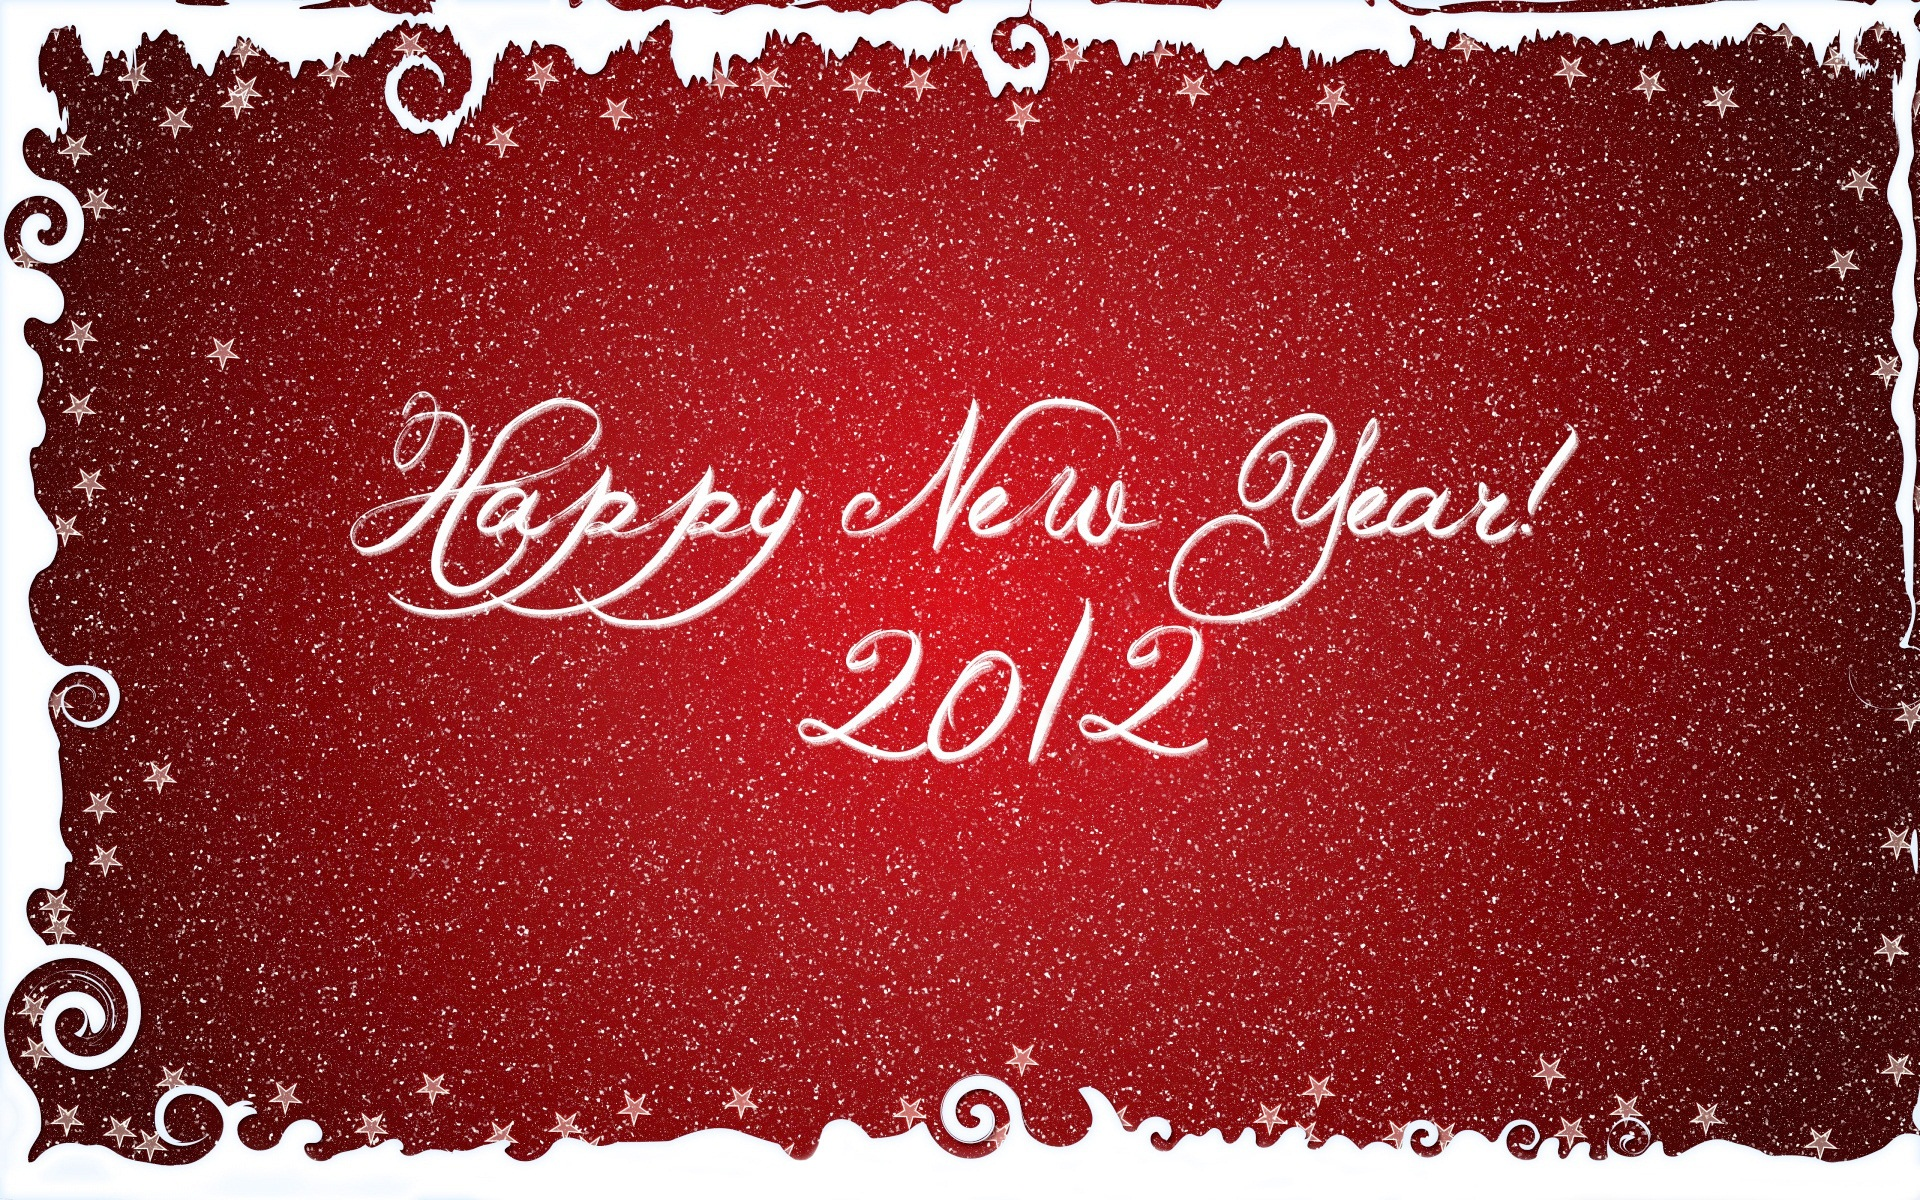 Happy New Year 2012 360.93 Kb